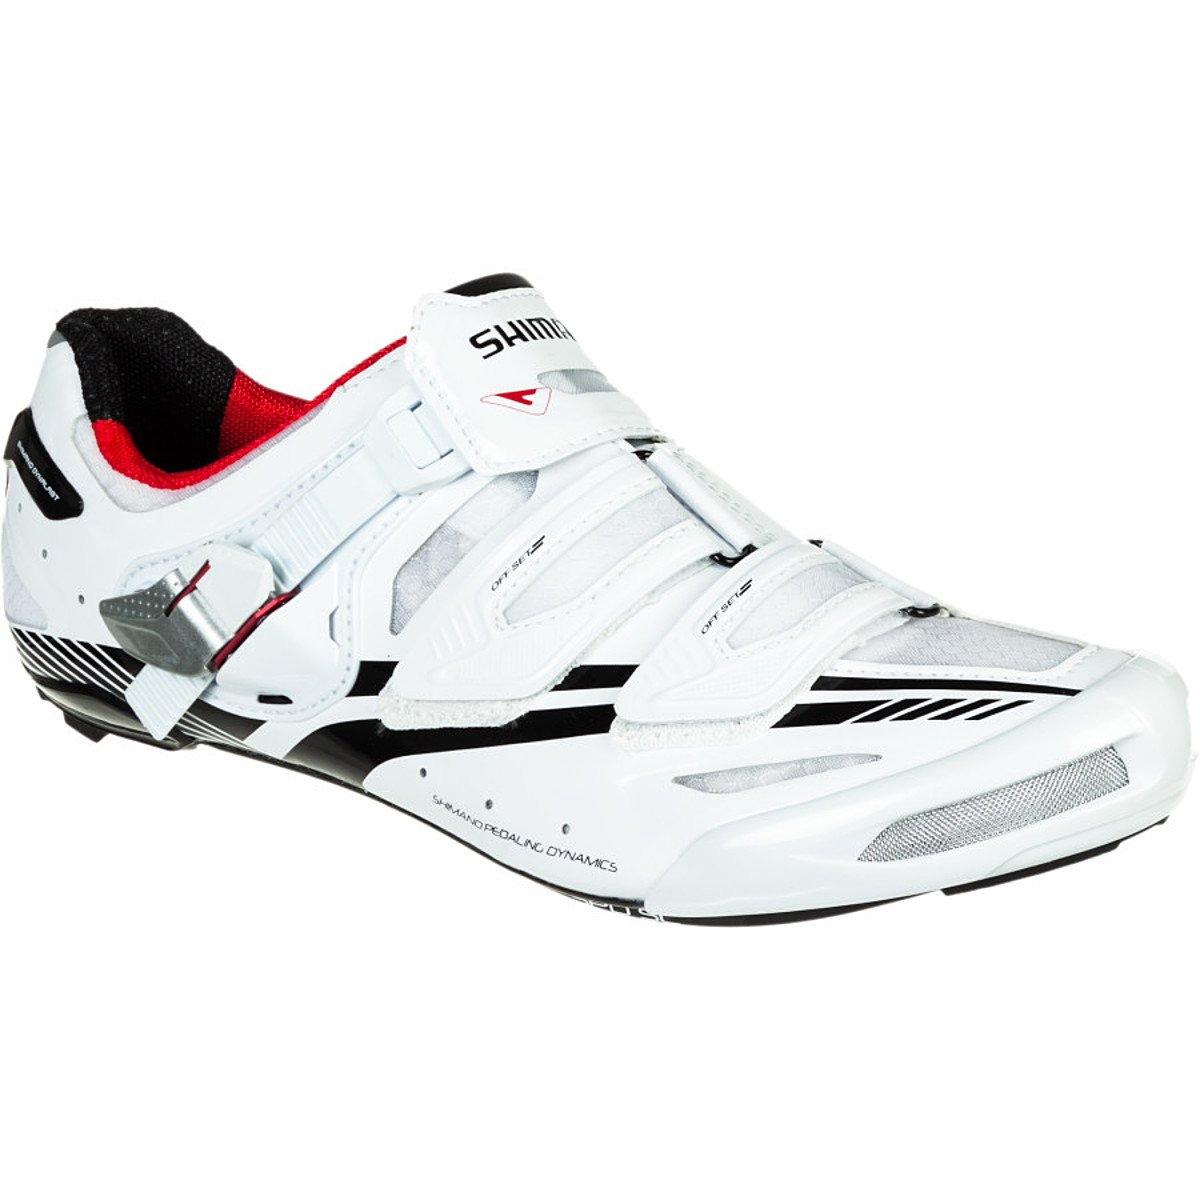 Shimano SH-R320 Shoes on sale